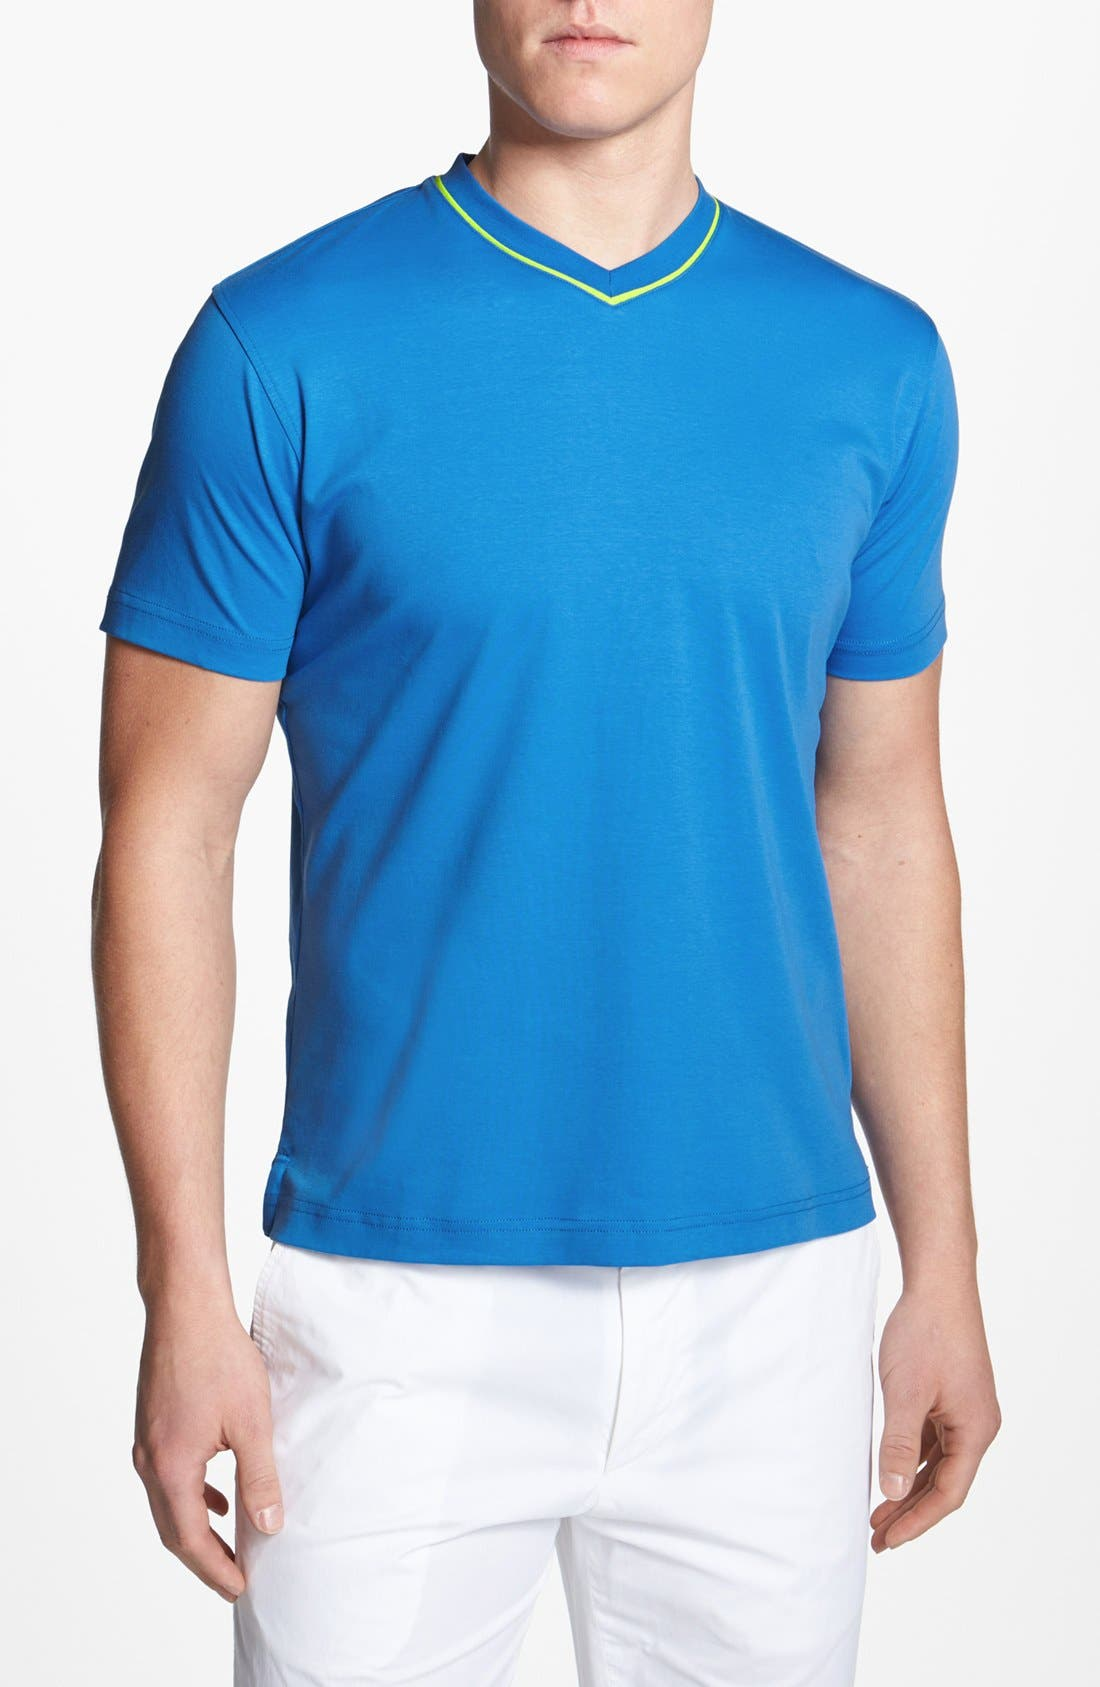 Main Image - Robert Graham 'Nevis' V-Neck T-Shirt